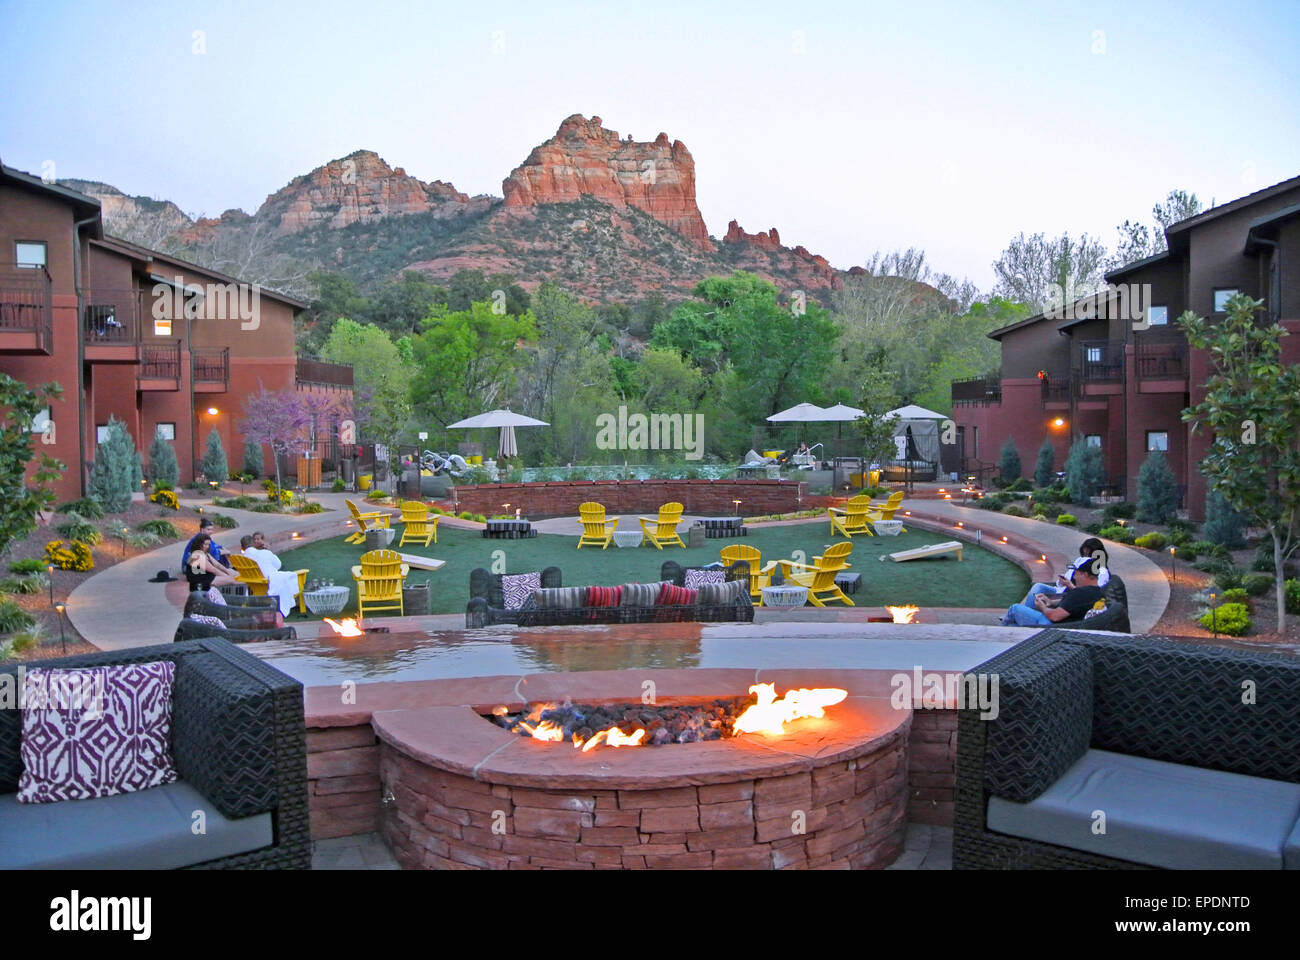 hotel guests relax at one of many luxury resorts in sedona arizona - Stock Image